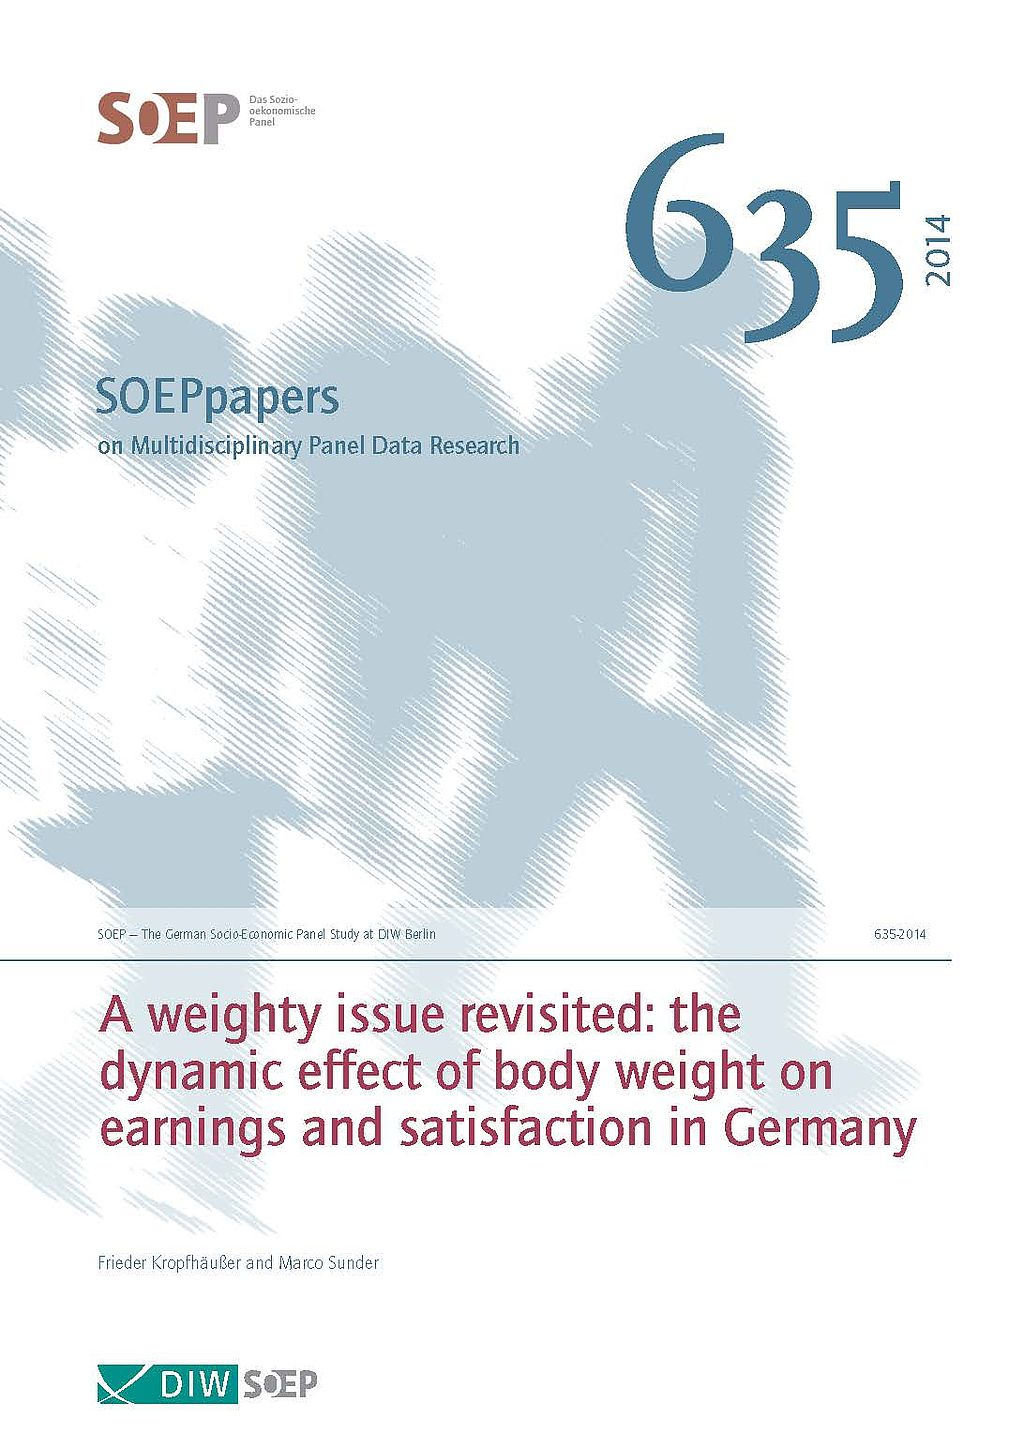 cover_SOEPpapers_2014-635.jpg